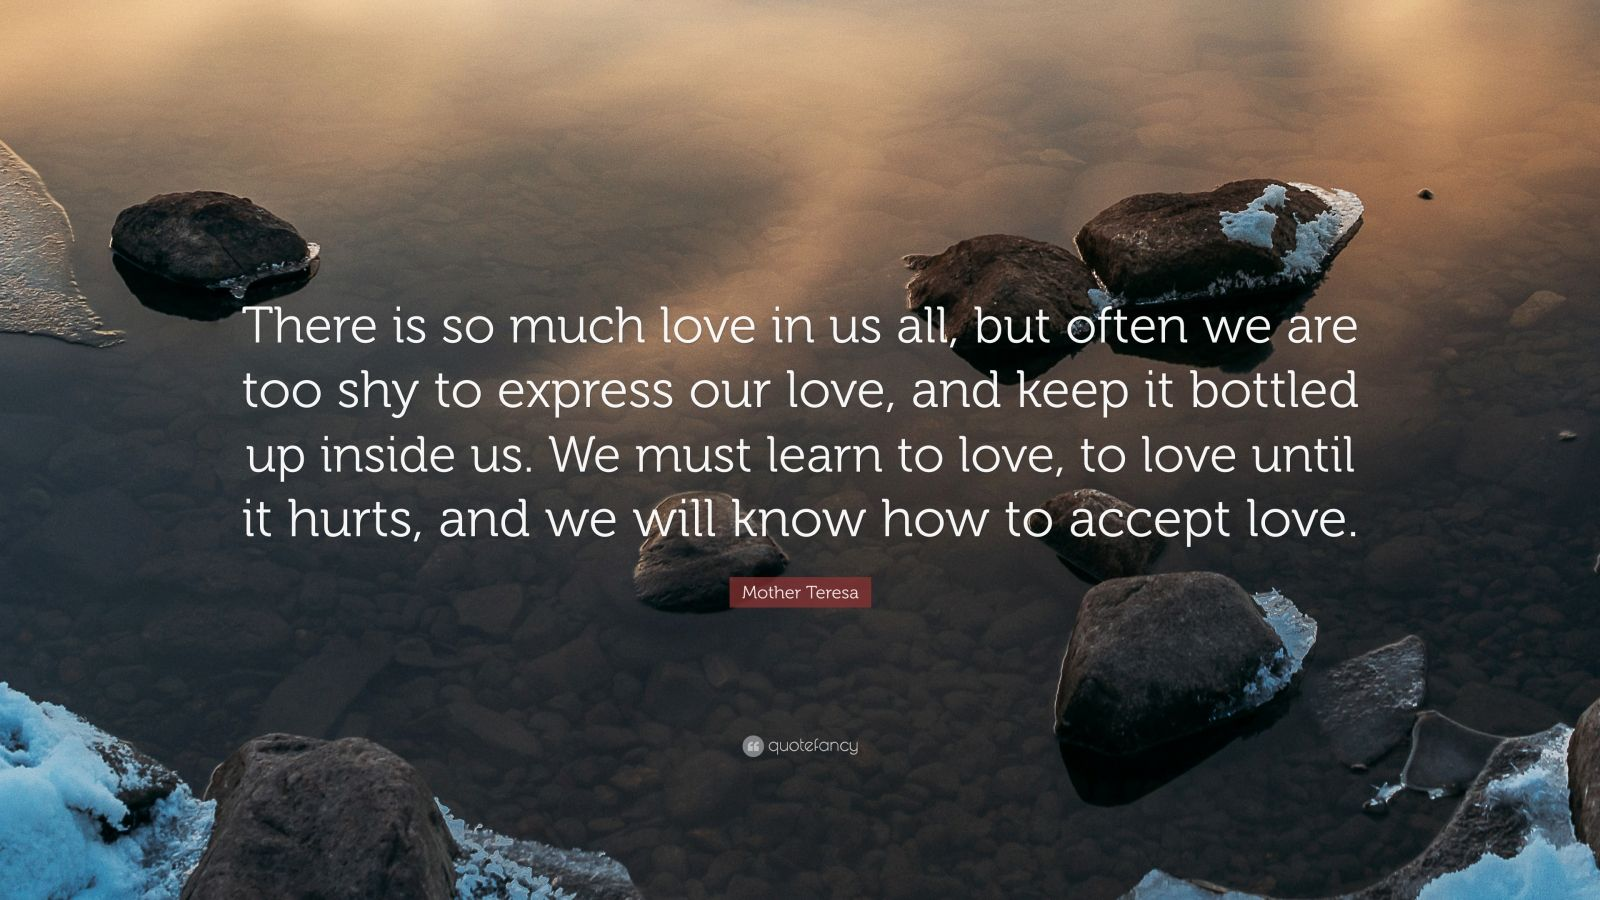 """Mother Teresa Quote: """"There is so much love in us all, but often we are too shy to express our love, and keep it bottled up inside us. We must learn to love, to love until it hurts, and we will know how to accept love."""""""